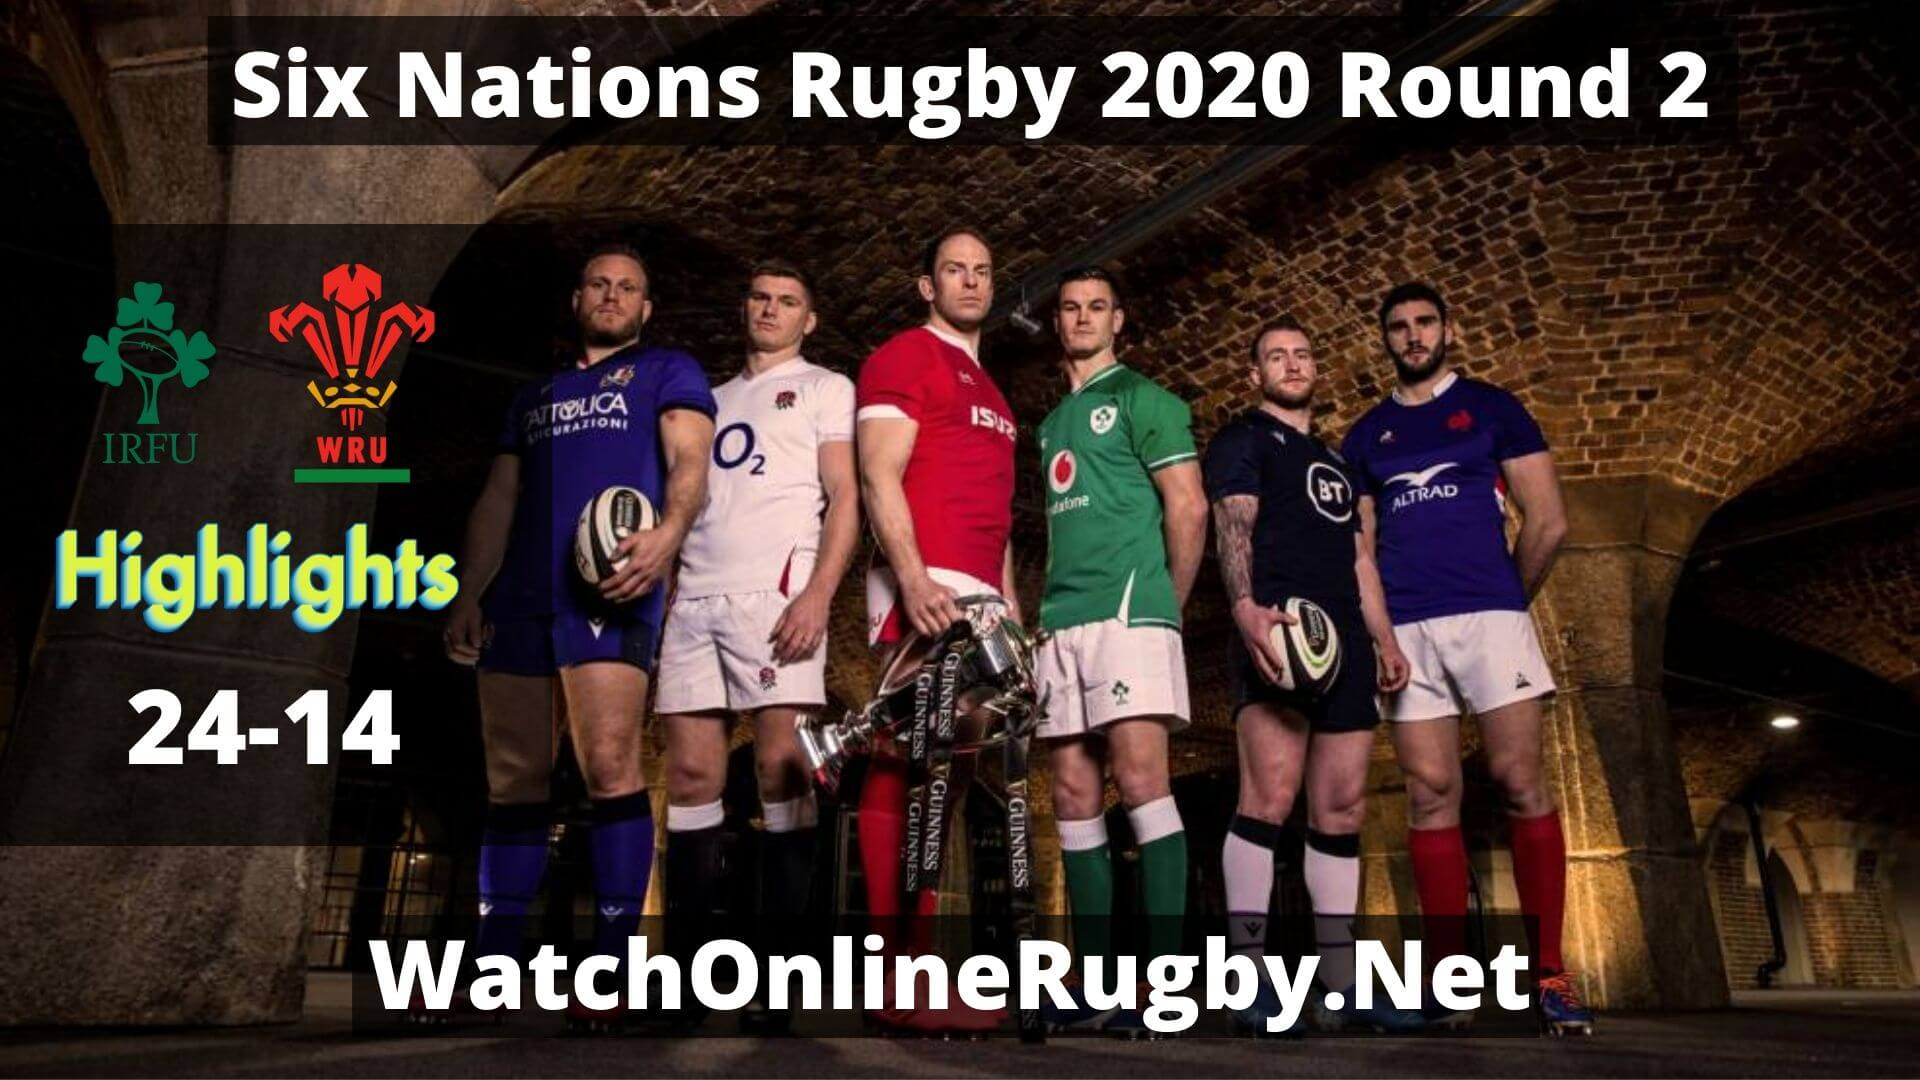 Ireland Vs Wales Six Nations Rugby Rd 2 Highlights 2020